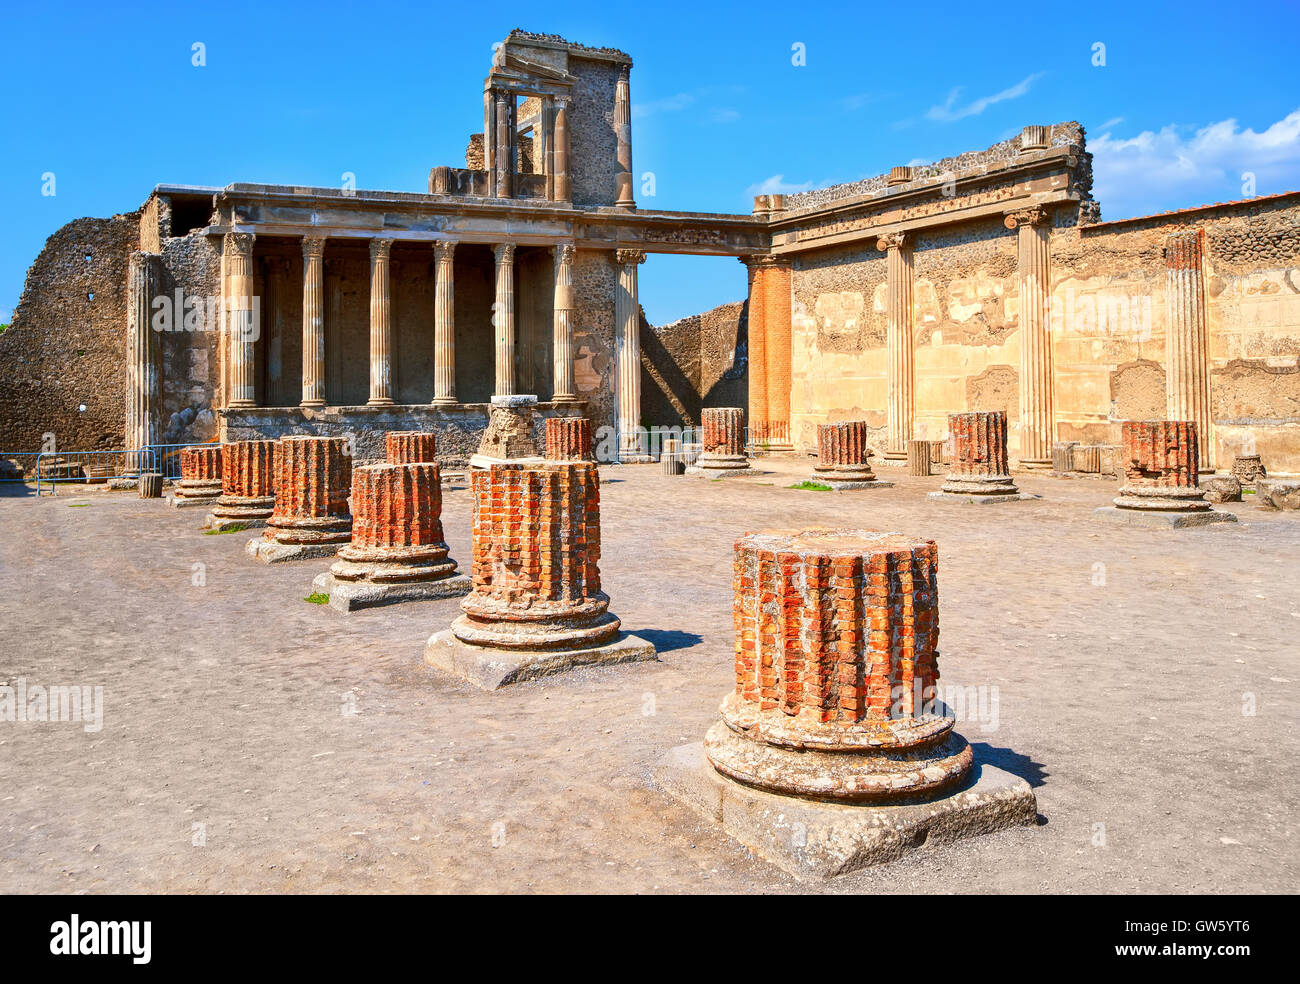 Ruins of antique roman temple in Pompeii, destroyed by eruption of Mount Vesuvius volcano in 79 AD, Naples, Italy - Stock Image